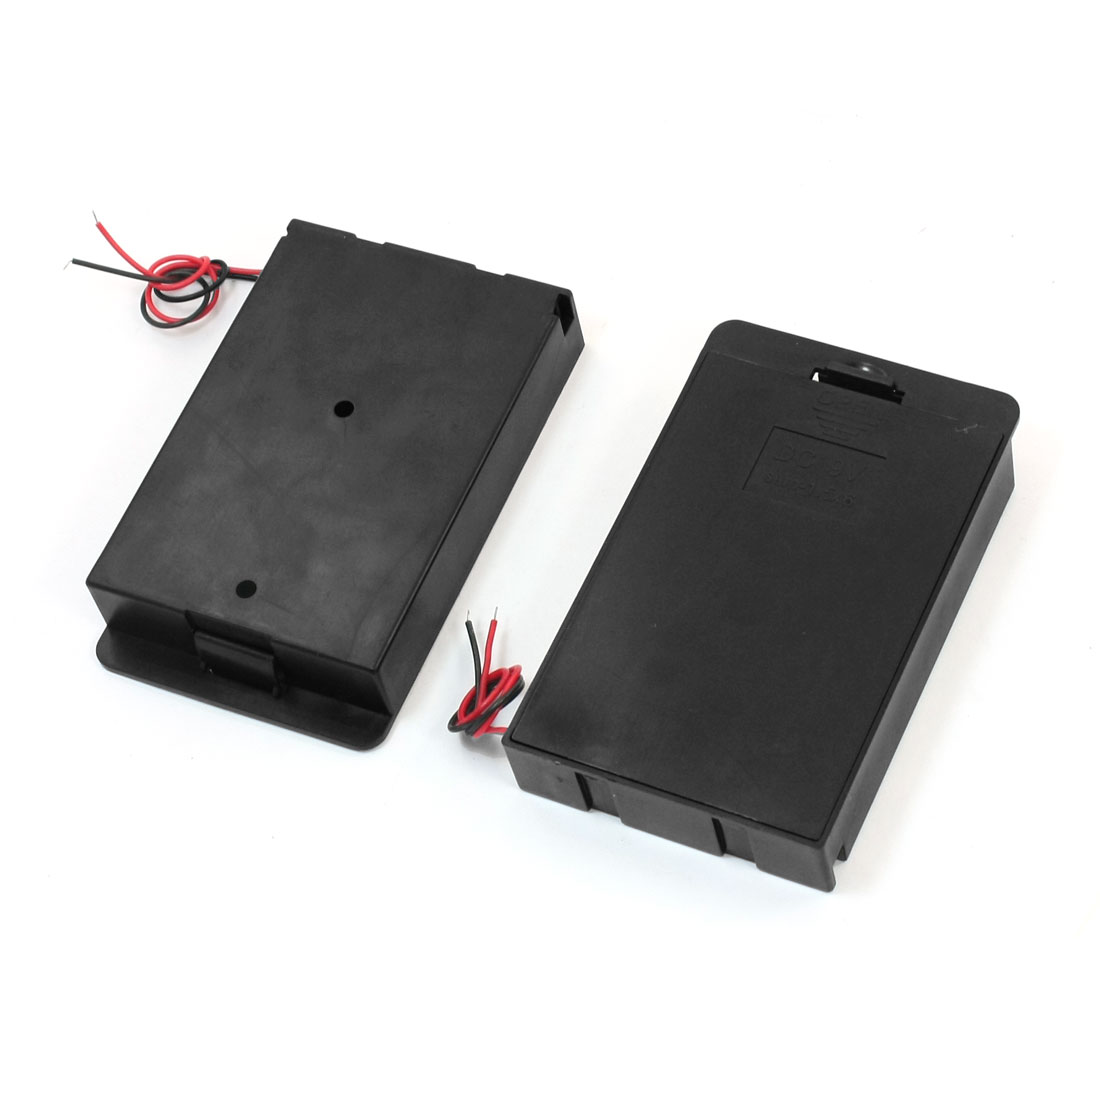 2 PCS Double Wired Leads Plastic Cover Black 6 x 1.5V AA Battery Holder Case Container Box